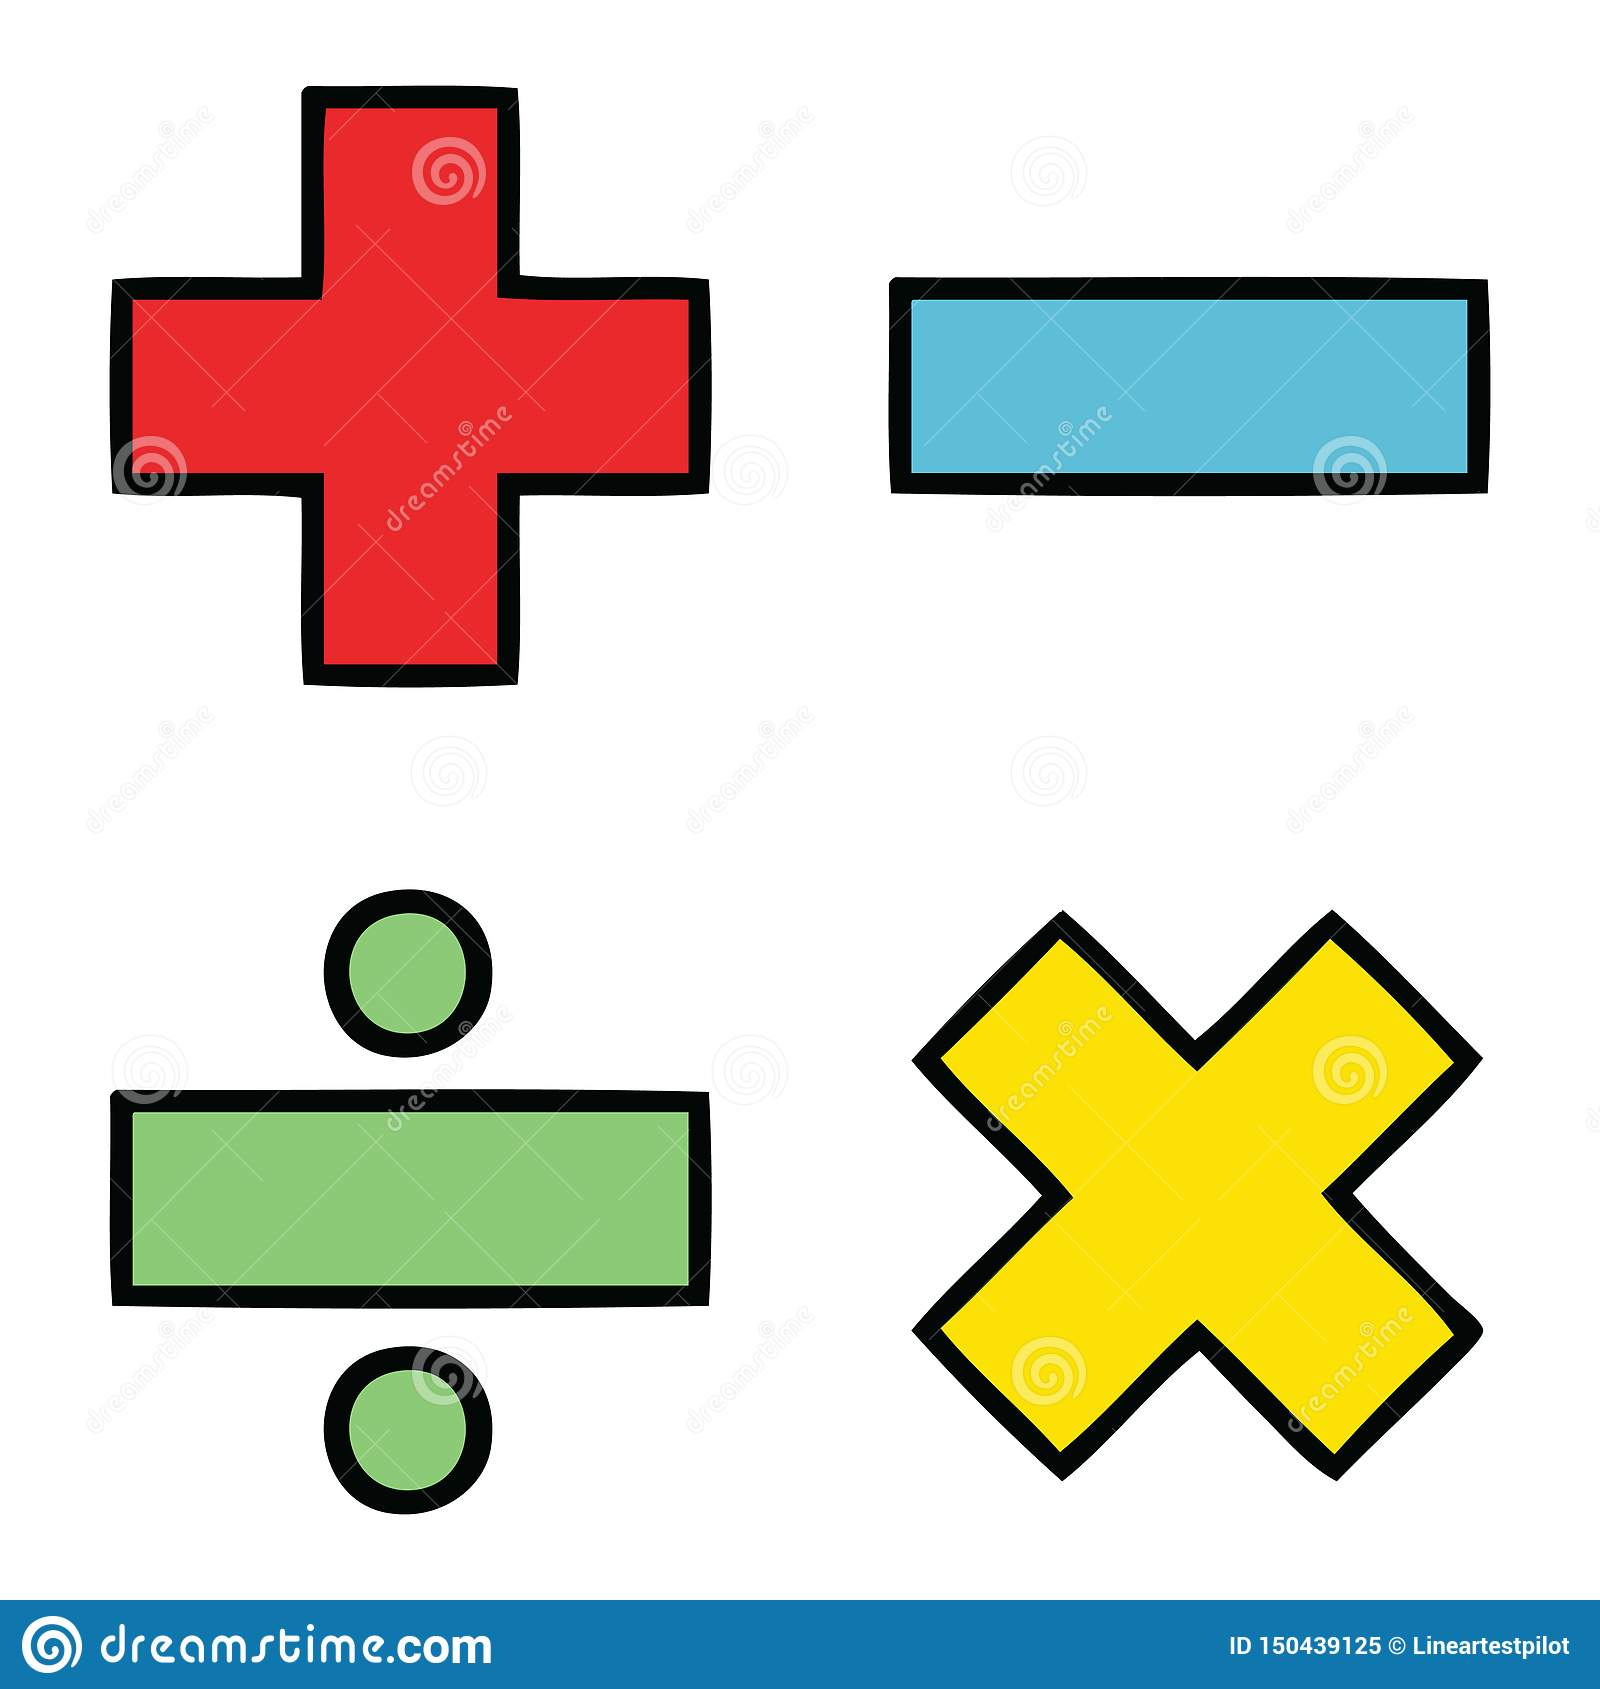 Cute Cartoon Of A Math Symbols Stock Vector